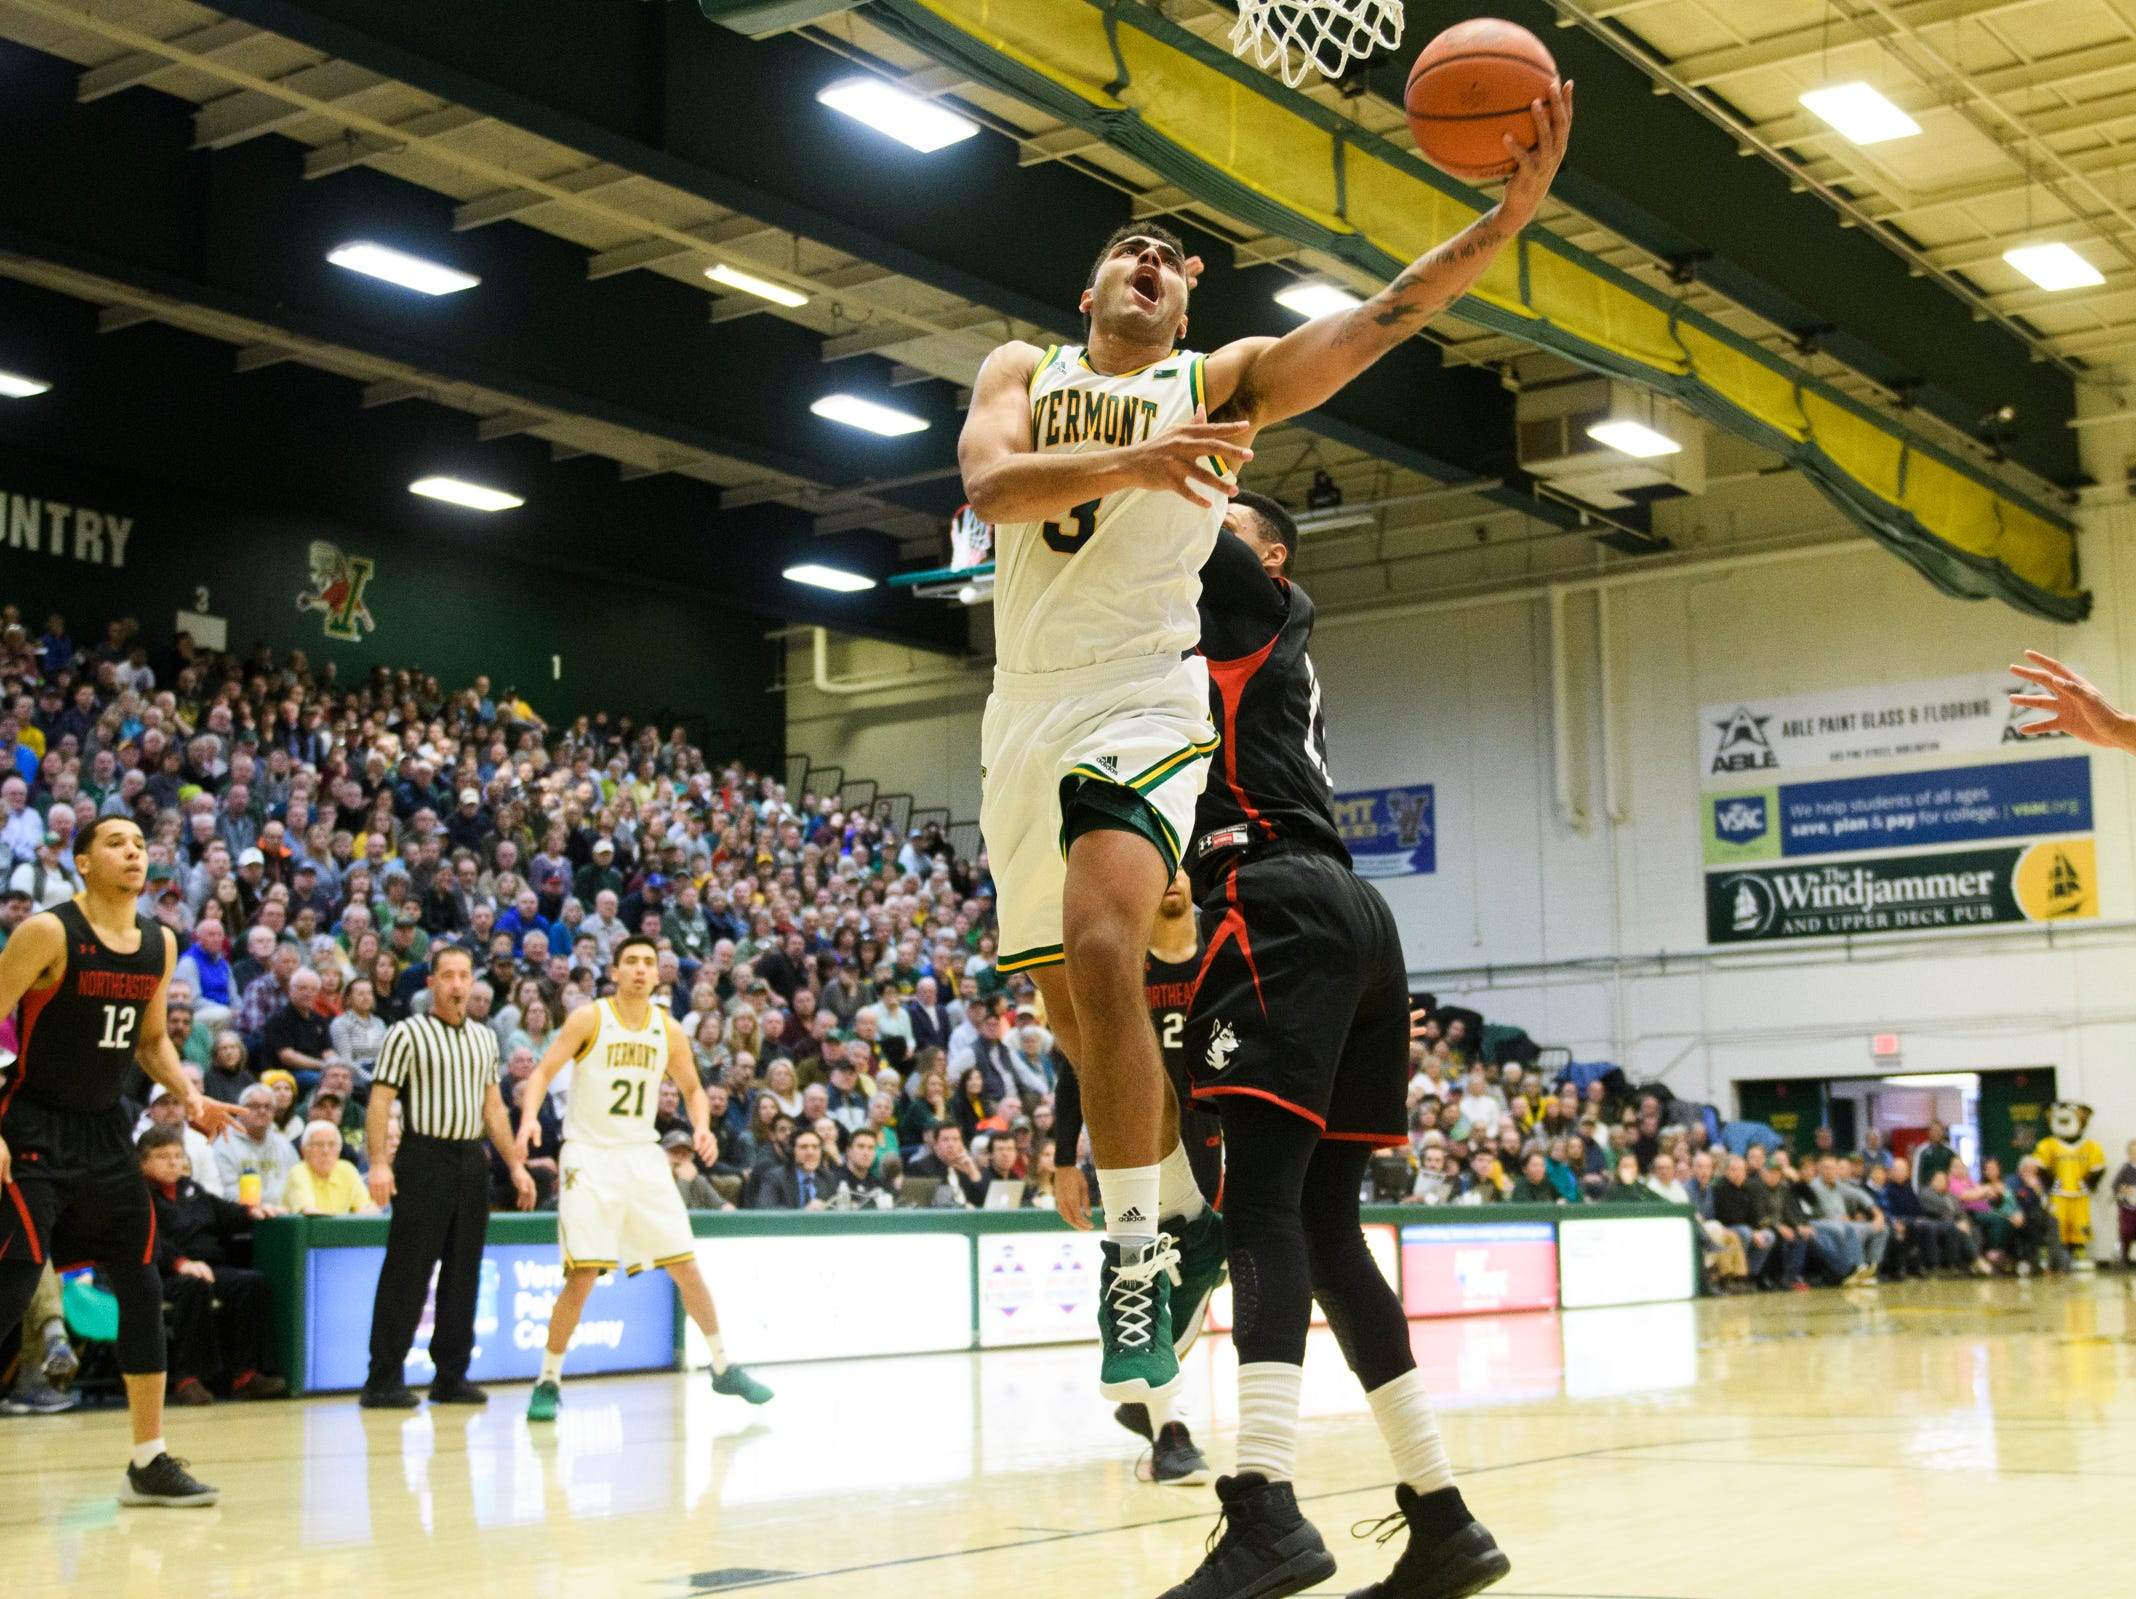 Vermont forward Anthony Lamb (3) leaps for a lay up during the men's basketball game between the Northeastern Huskies and the Vermont Catamounts at Patrick Gym on Sunday afternoon December 16, 2018 in Burlington.